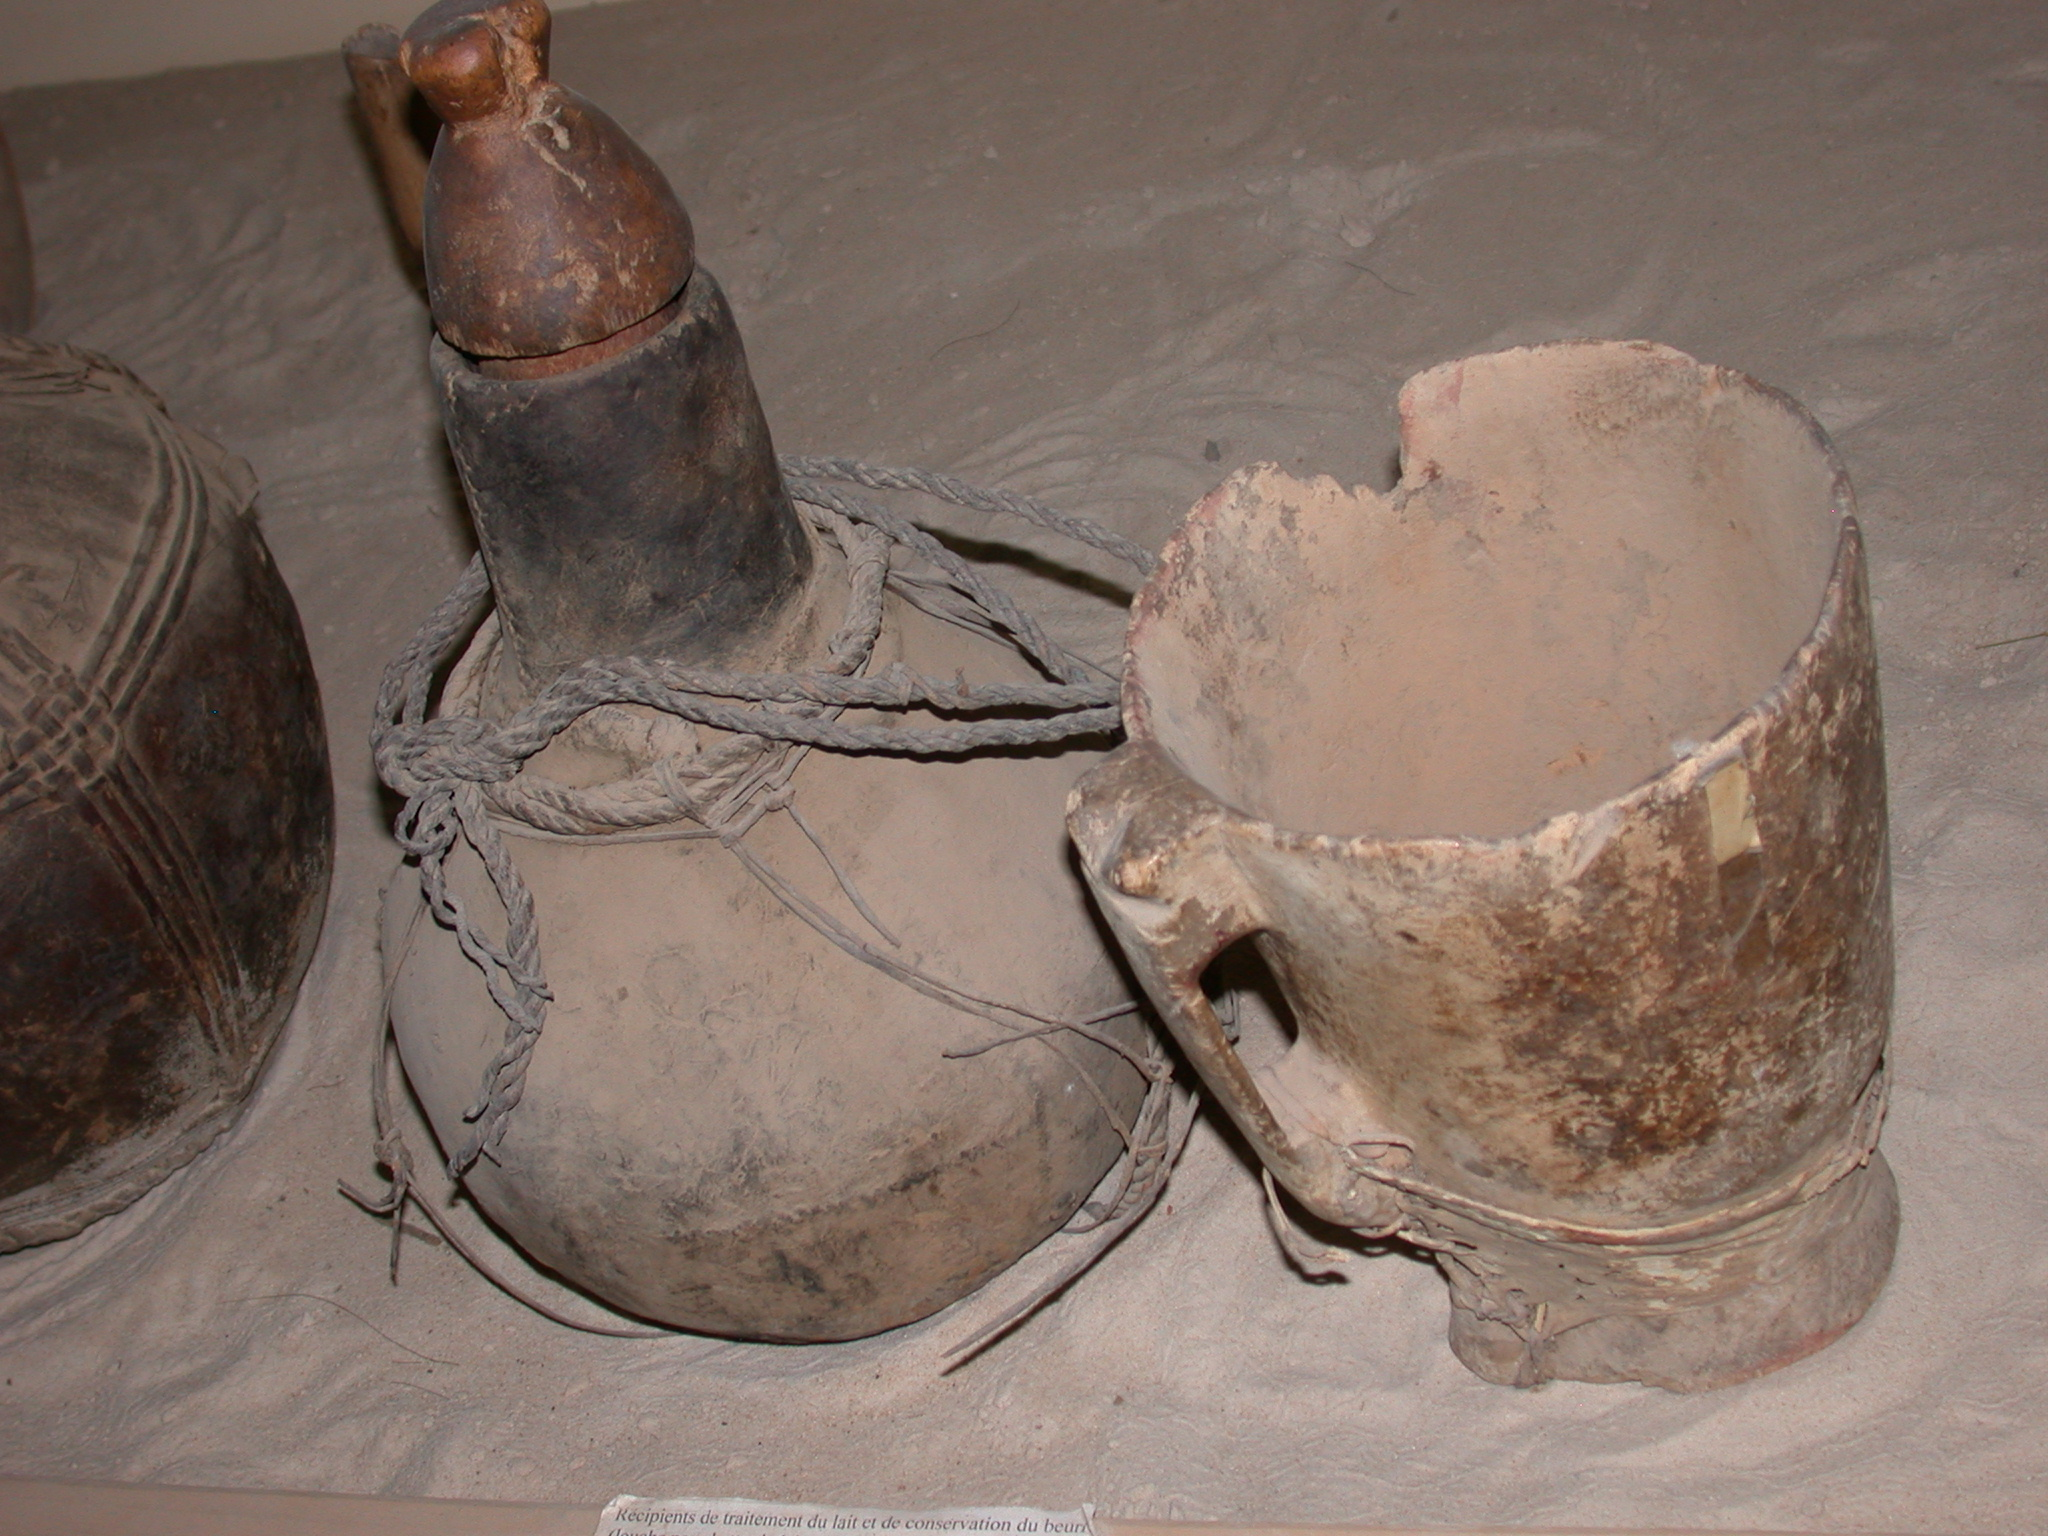 Containers for Milking and Storage of Butter, Gourd, Timbuktu Ethnological Museum, Timbuktu, Mali